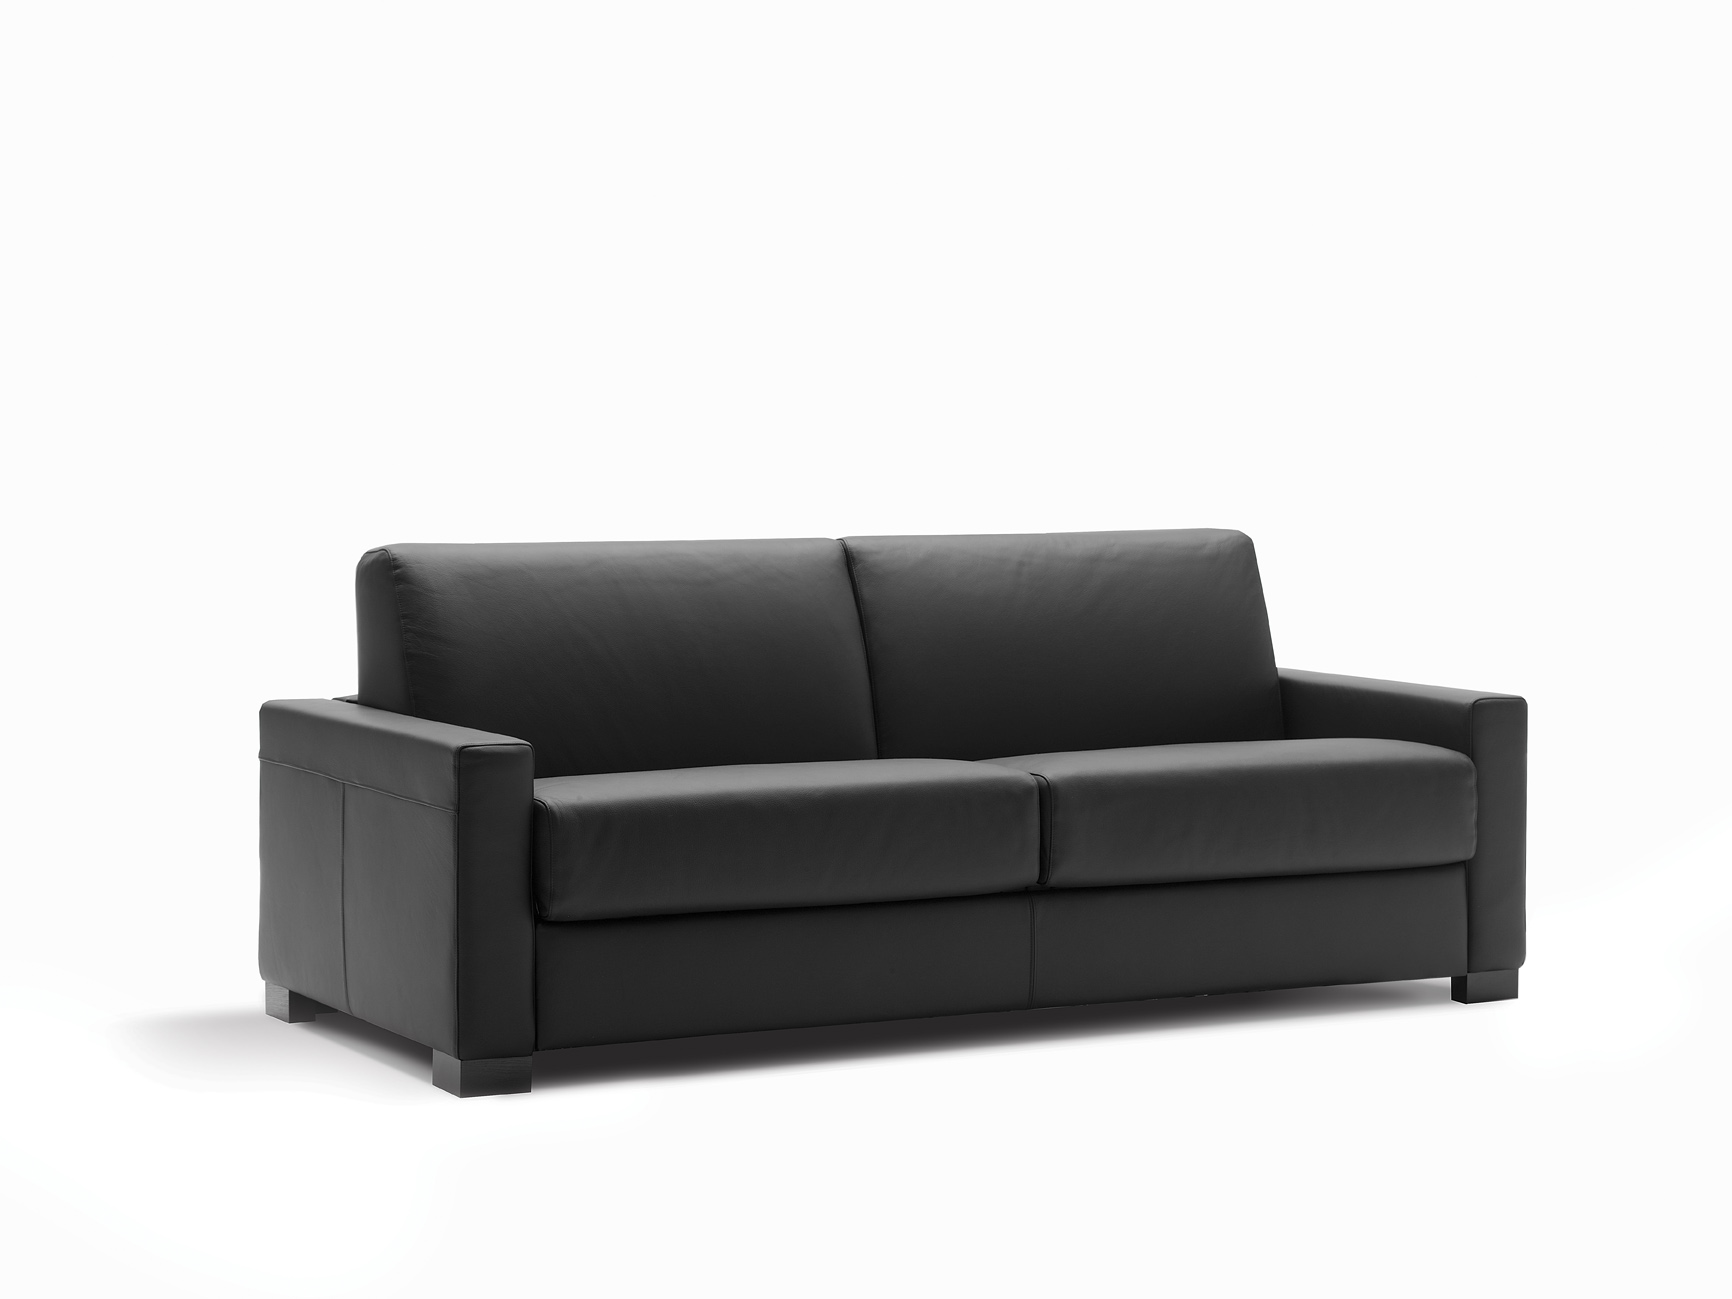 quelle diff rence entre canap s convertible banquette canap togo. Black Bedroom Furniture Sets. Home Design Ideas